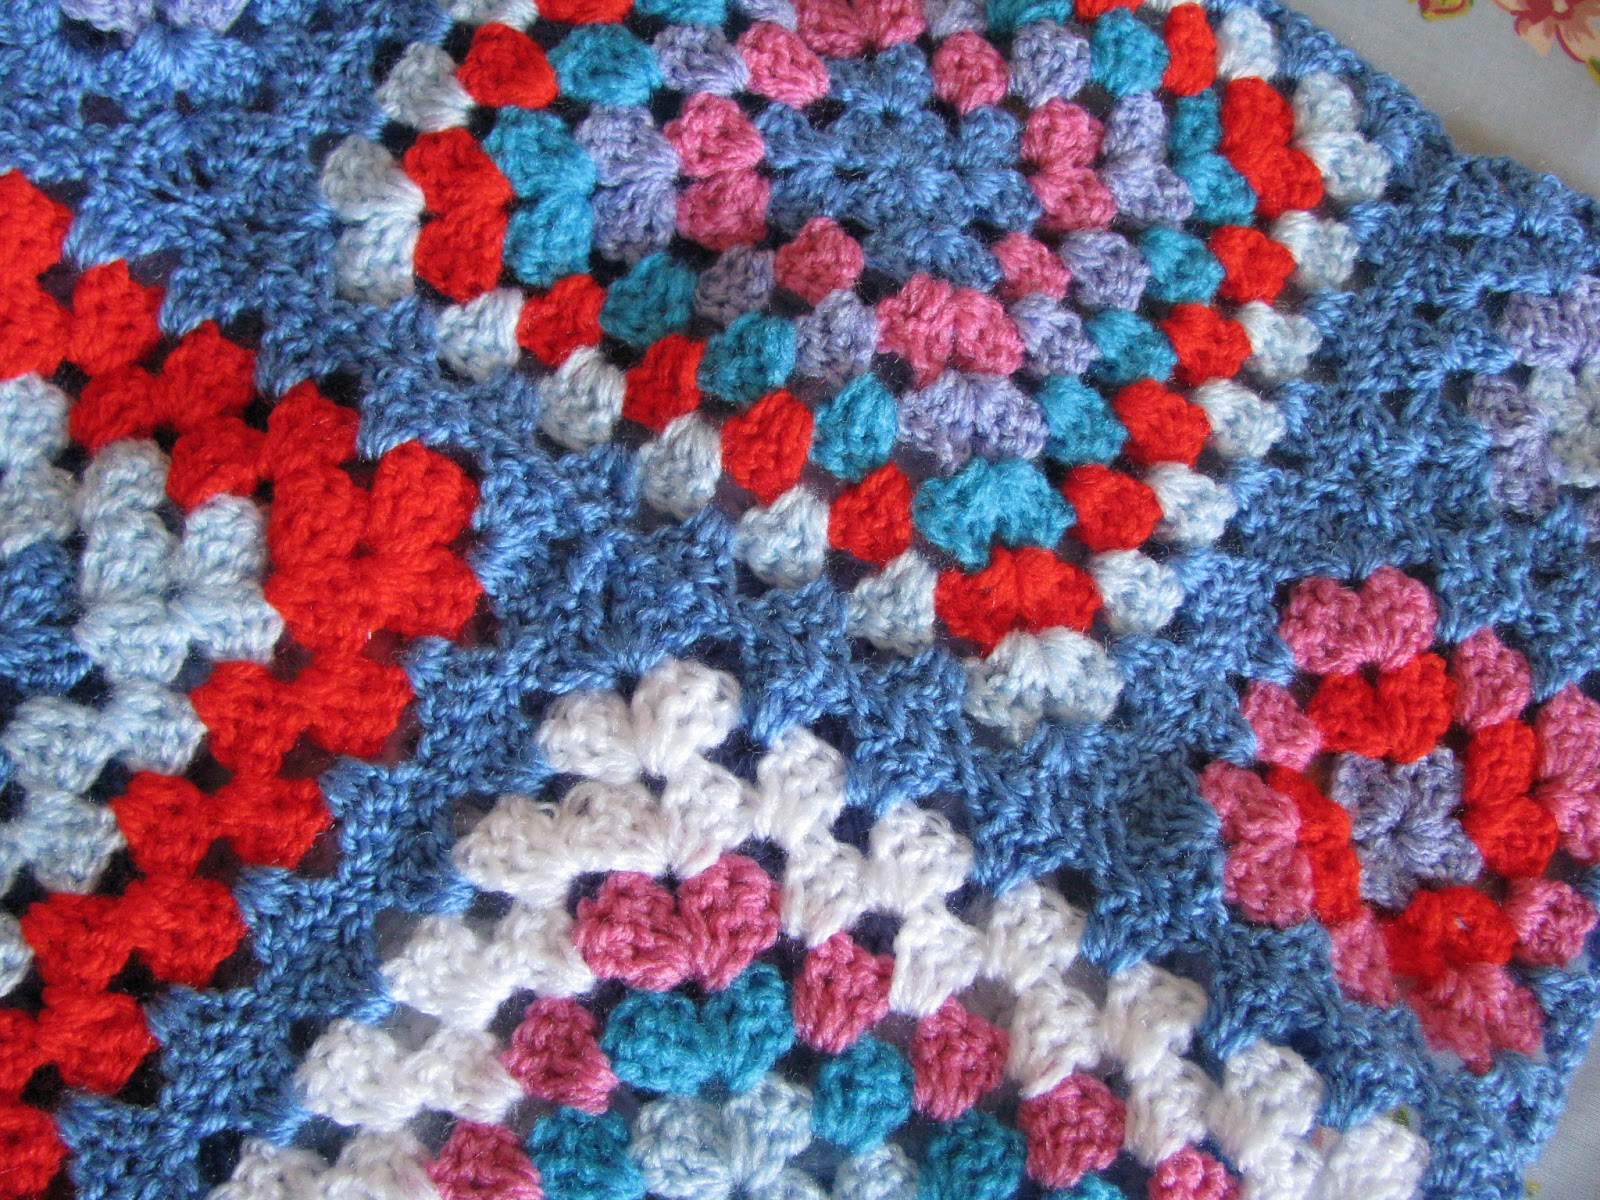 Crocheting Squares : Shortbread & Ginger: Bright Crochet Granny Squares